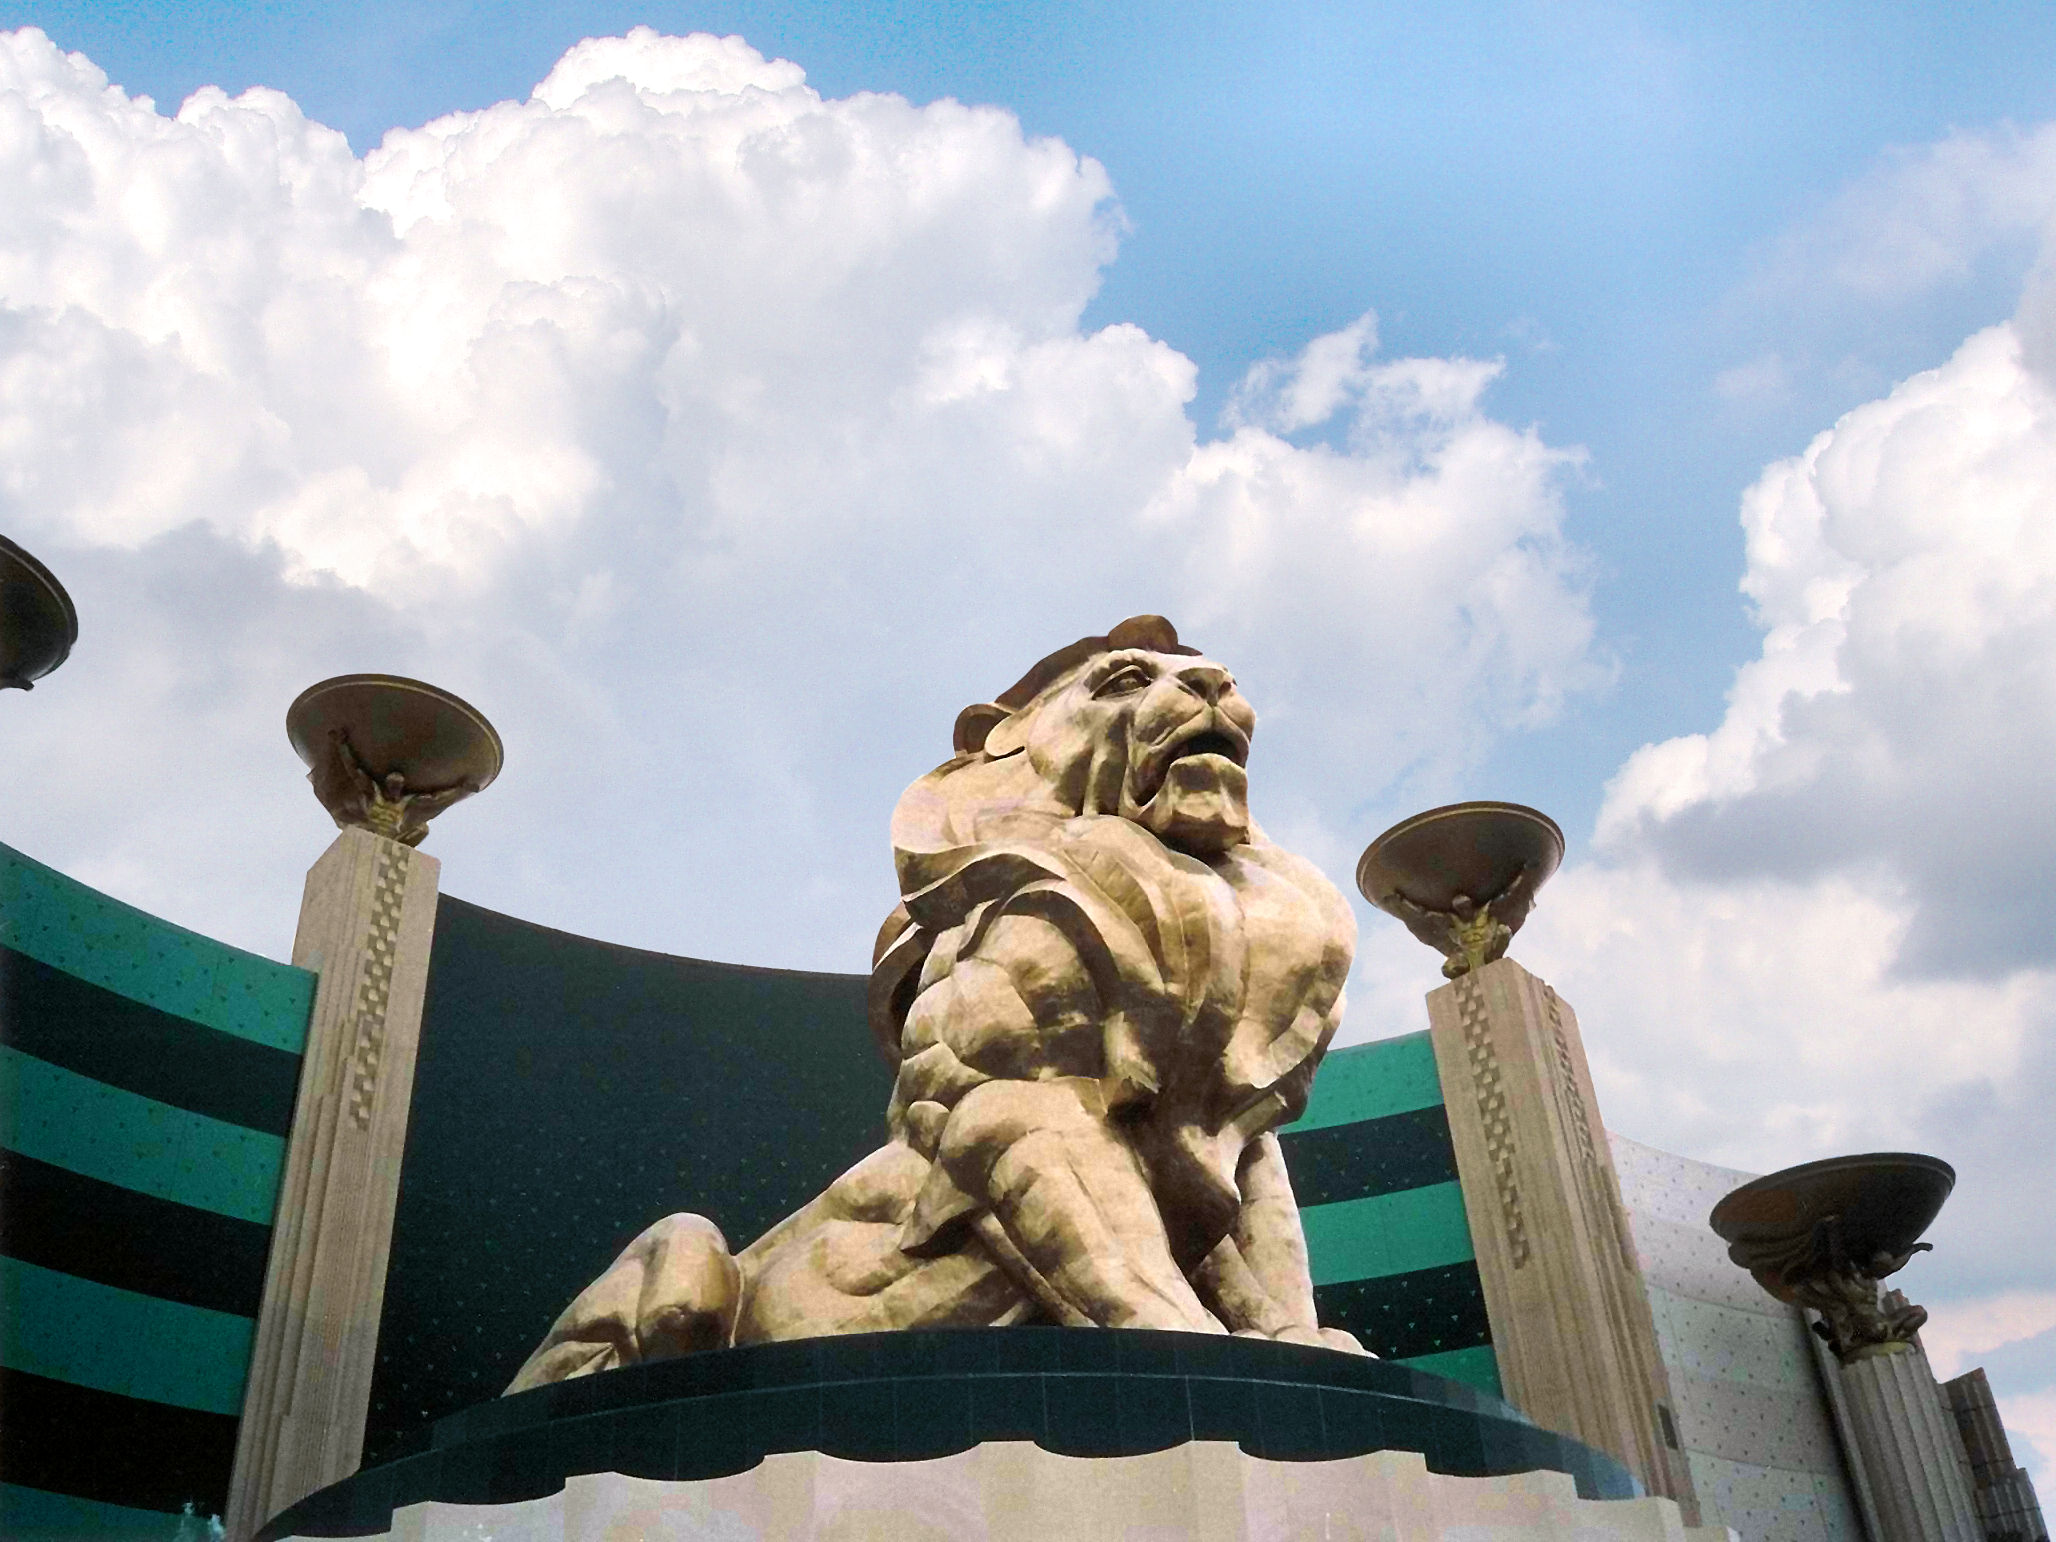 World Largest Hotels, MGM Grand, Las Vegas, Nevada, USA, Front lion statue